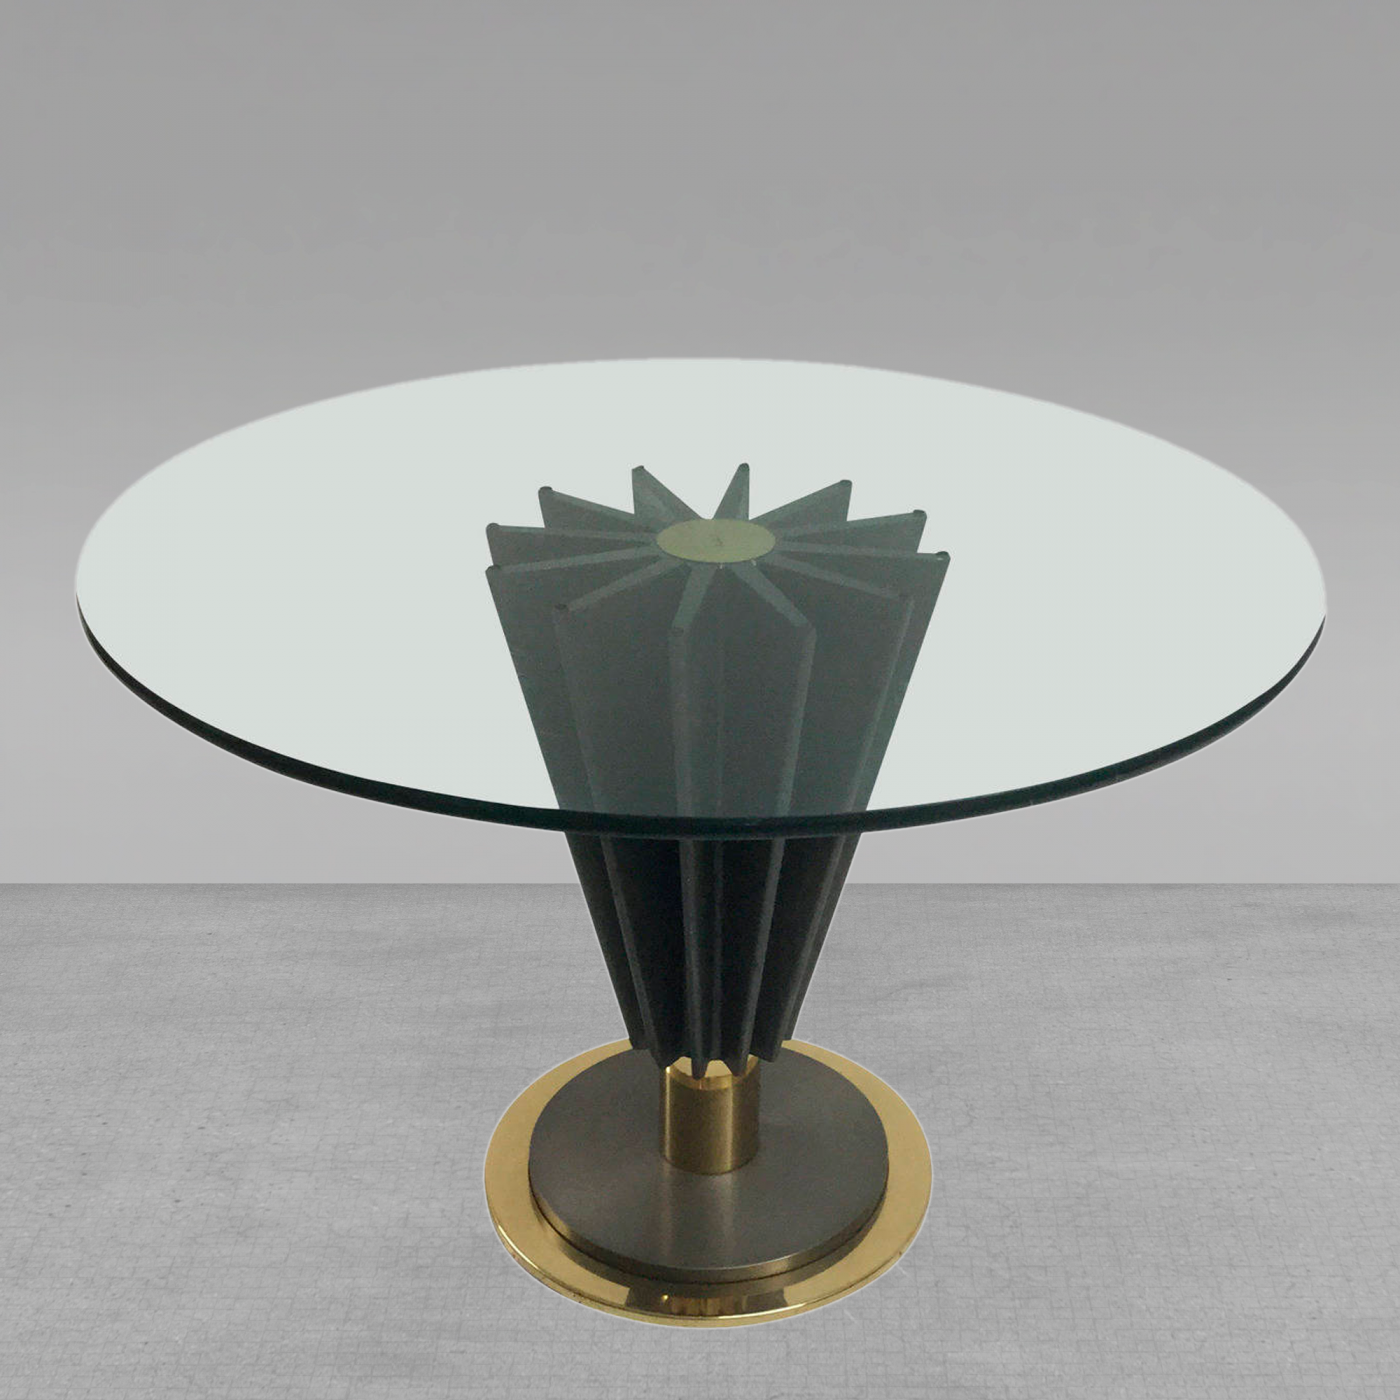 Pierre Cardin Exceptional Pierre Cardin Table 1970 s